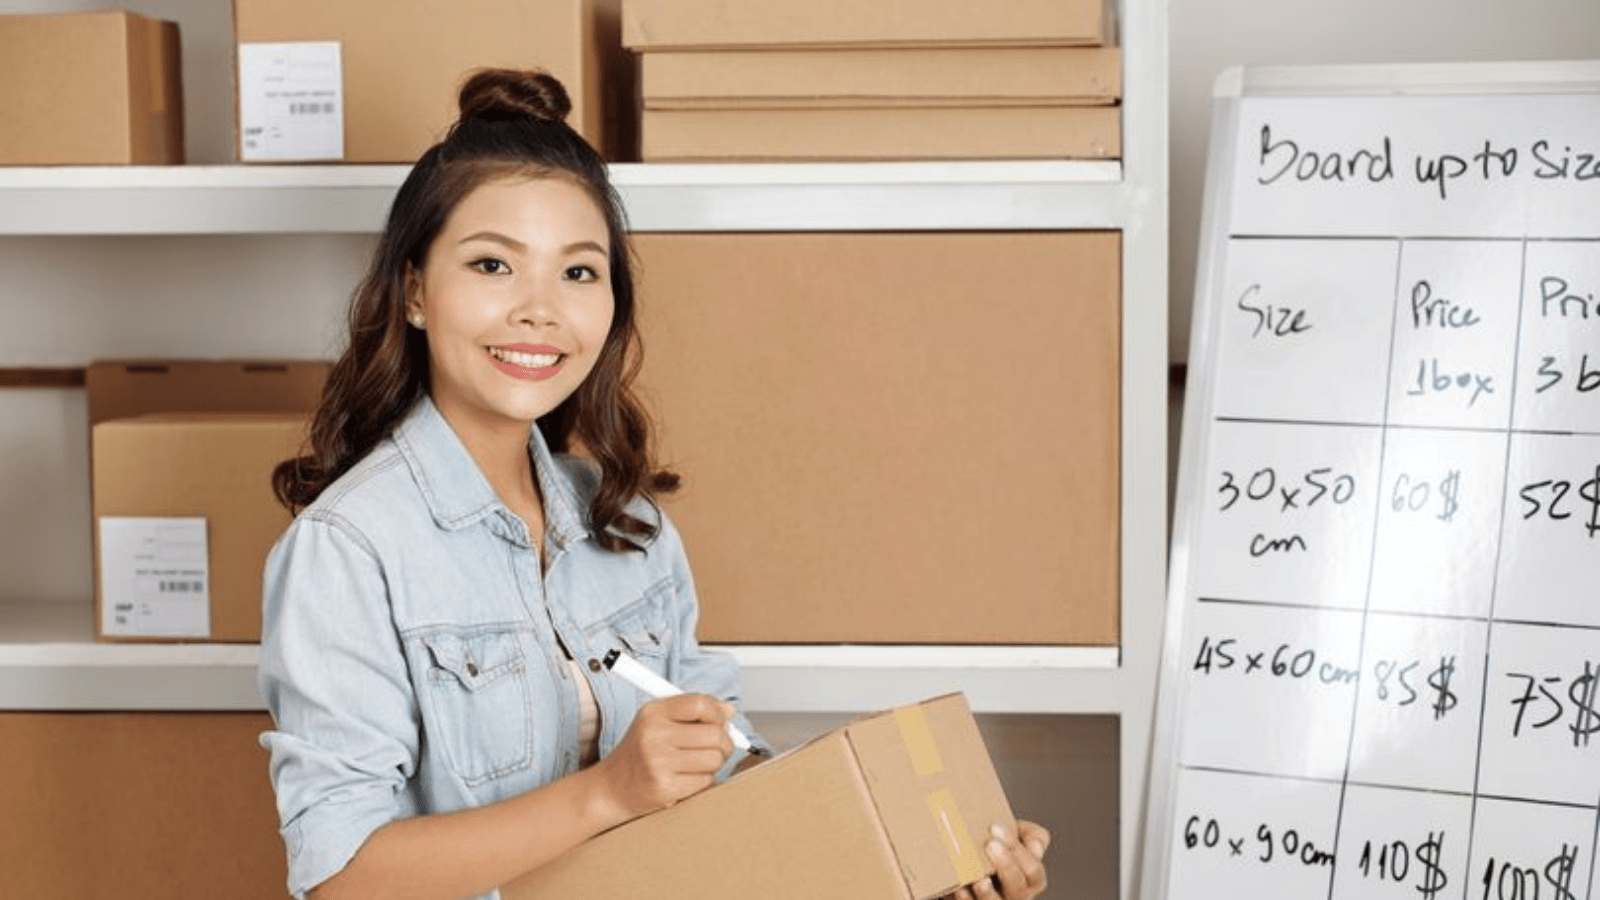 A woman holding a shipping box